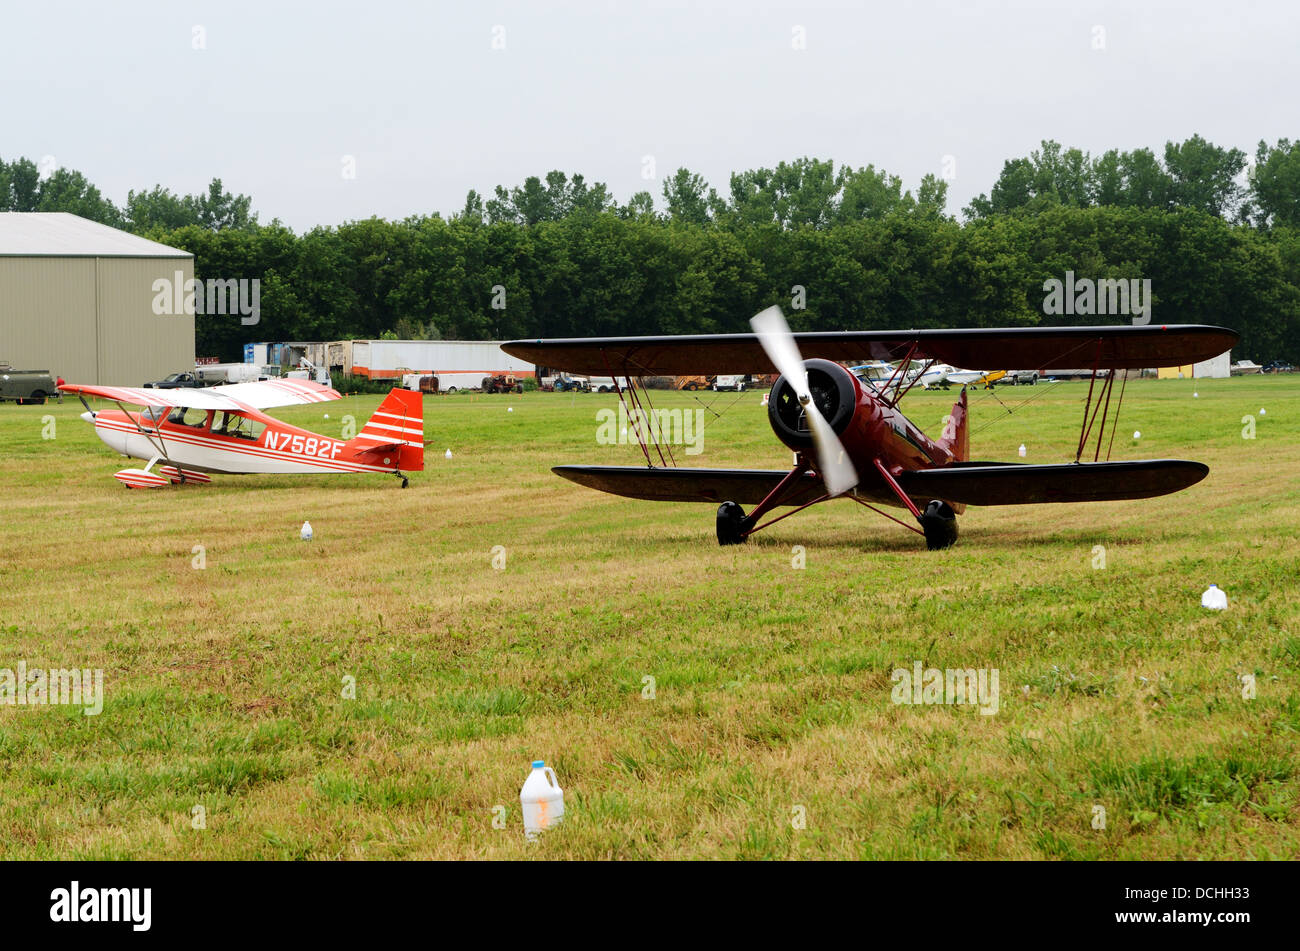 Restored Bi wing aircraft. - Stock Image